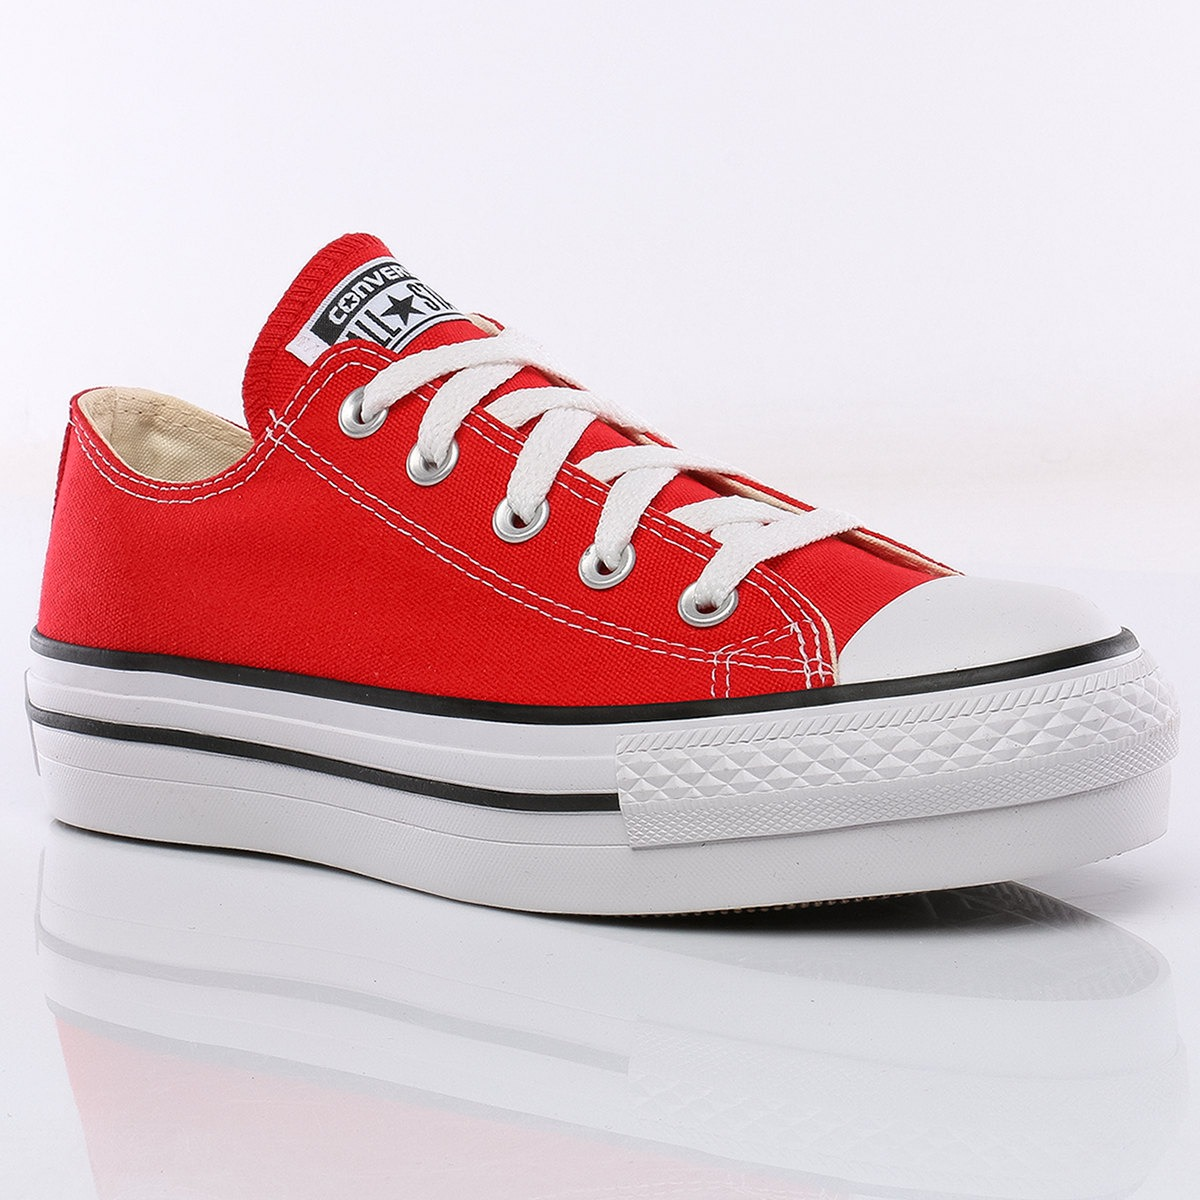 a2a9e06d7251 ... promo code for zapatillas chuck taylor all star platform red converse.  cargando zoom. 6e92d